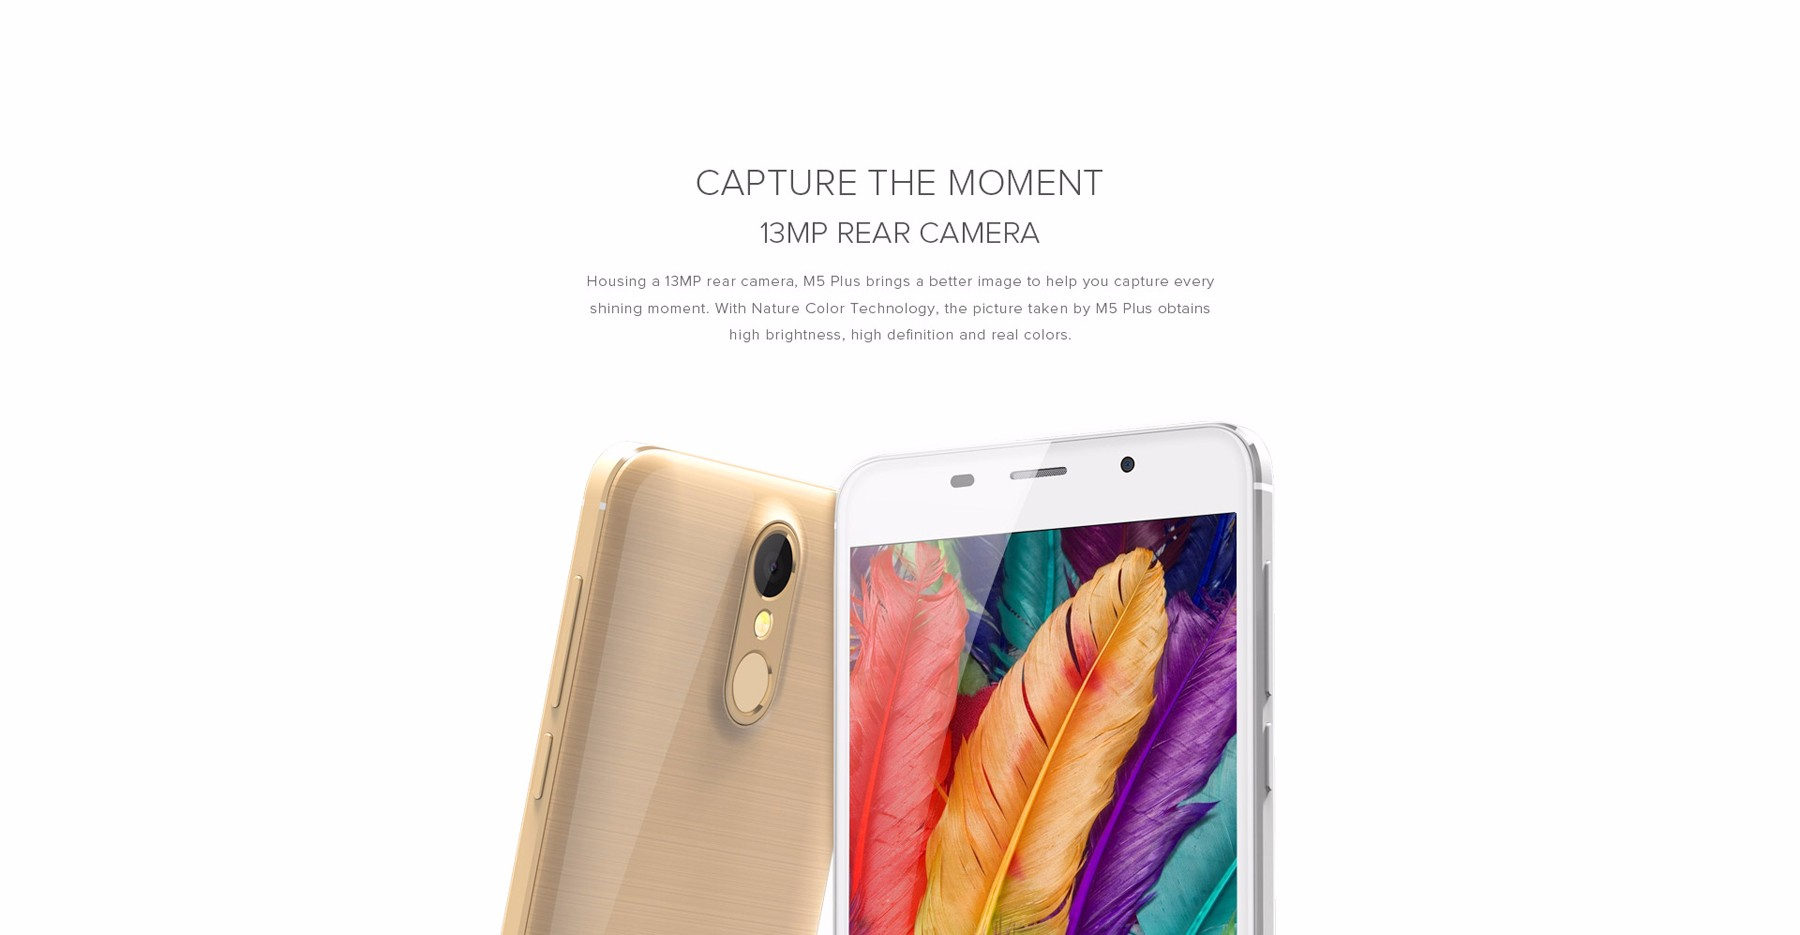 LEAGOO M5 Plus 5.5 inch 2.5D Screen 4G Phablet Android 6.0 MTK6737 Quad Core 1.3GHz 2GB RAM 16GB ROM 13MP + 5MP Cameras Fingerprint